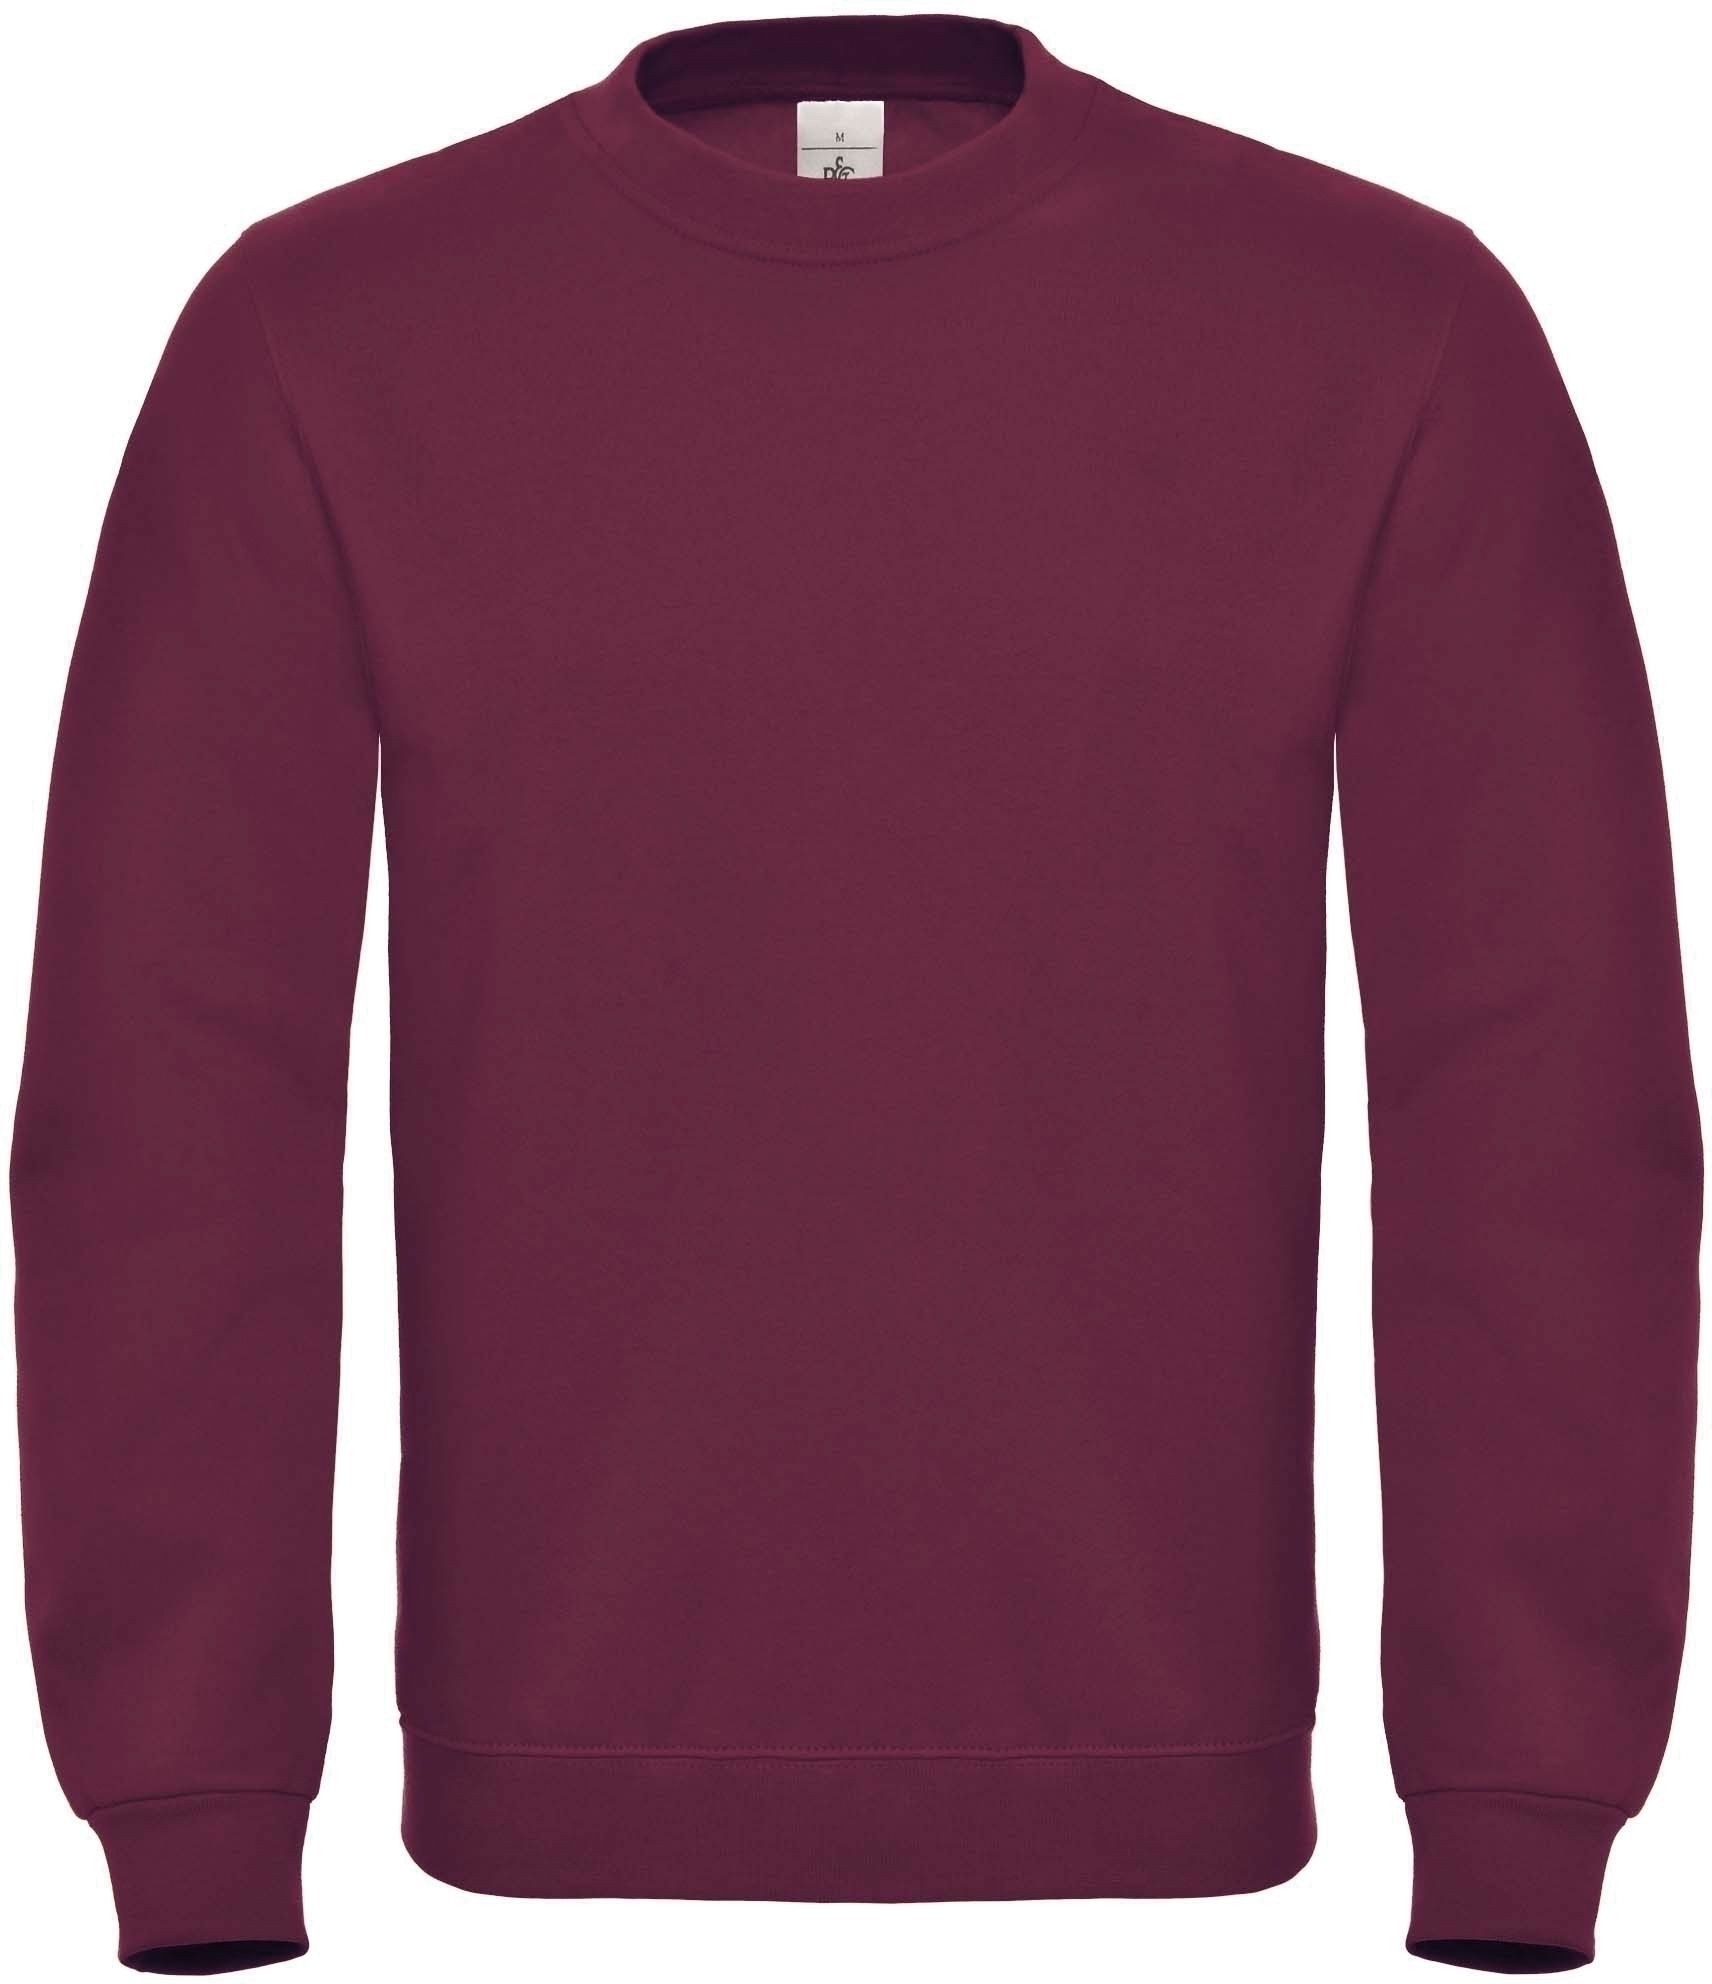 SWEAT-SHIRT COL ROND ID.002 Wine Rouge